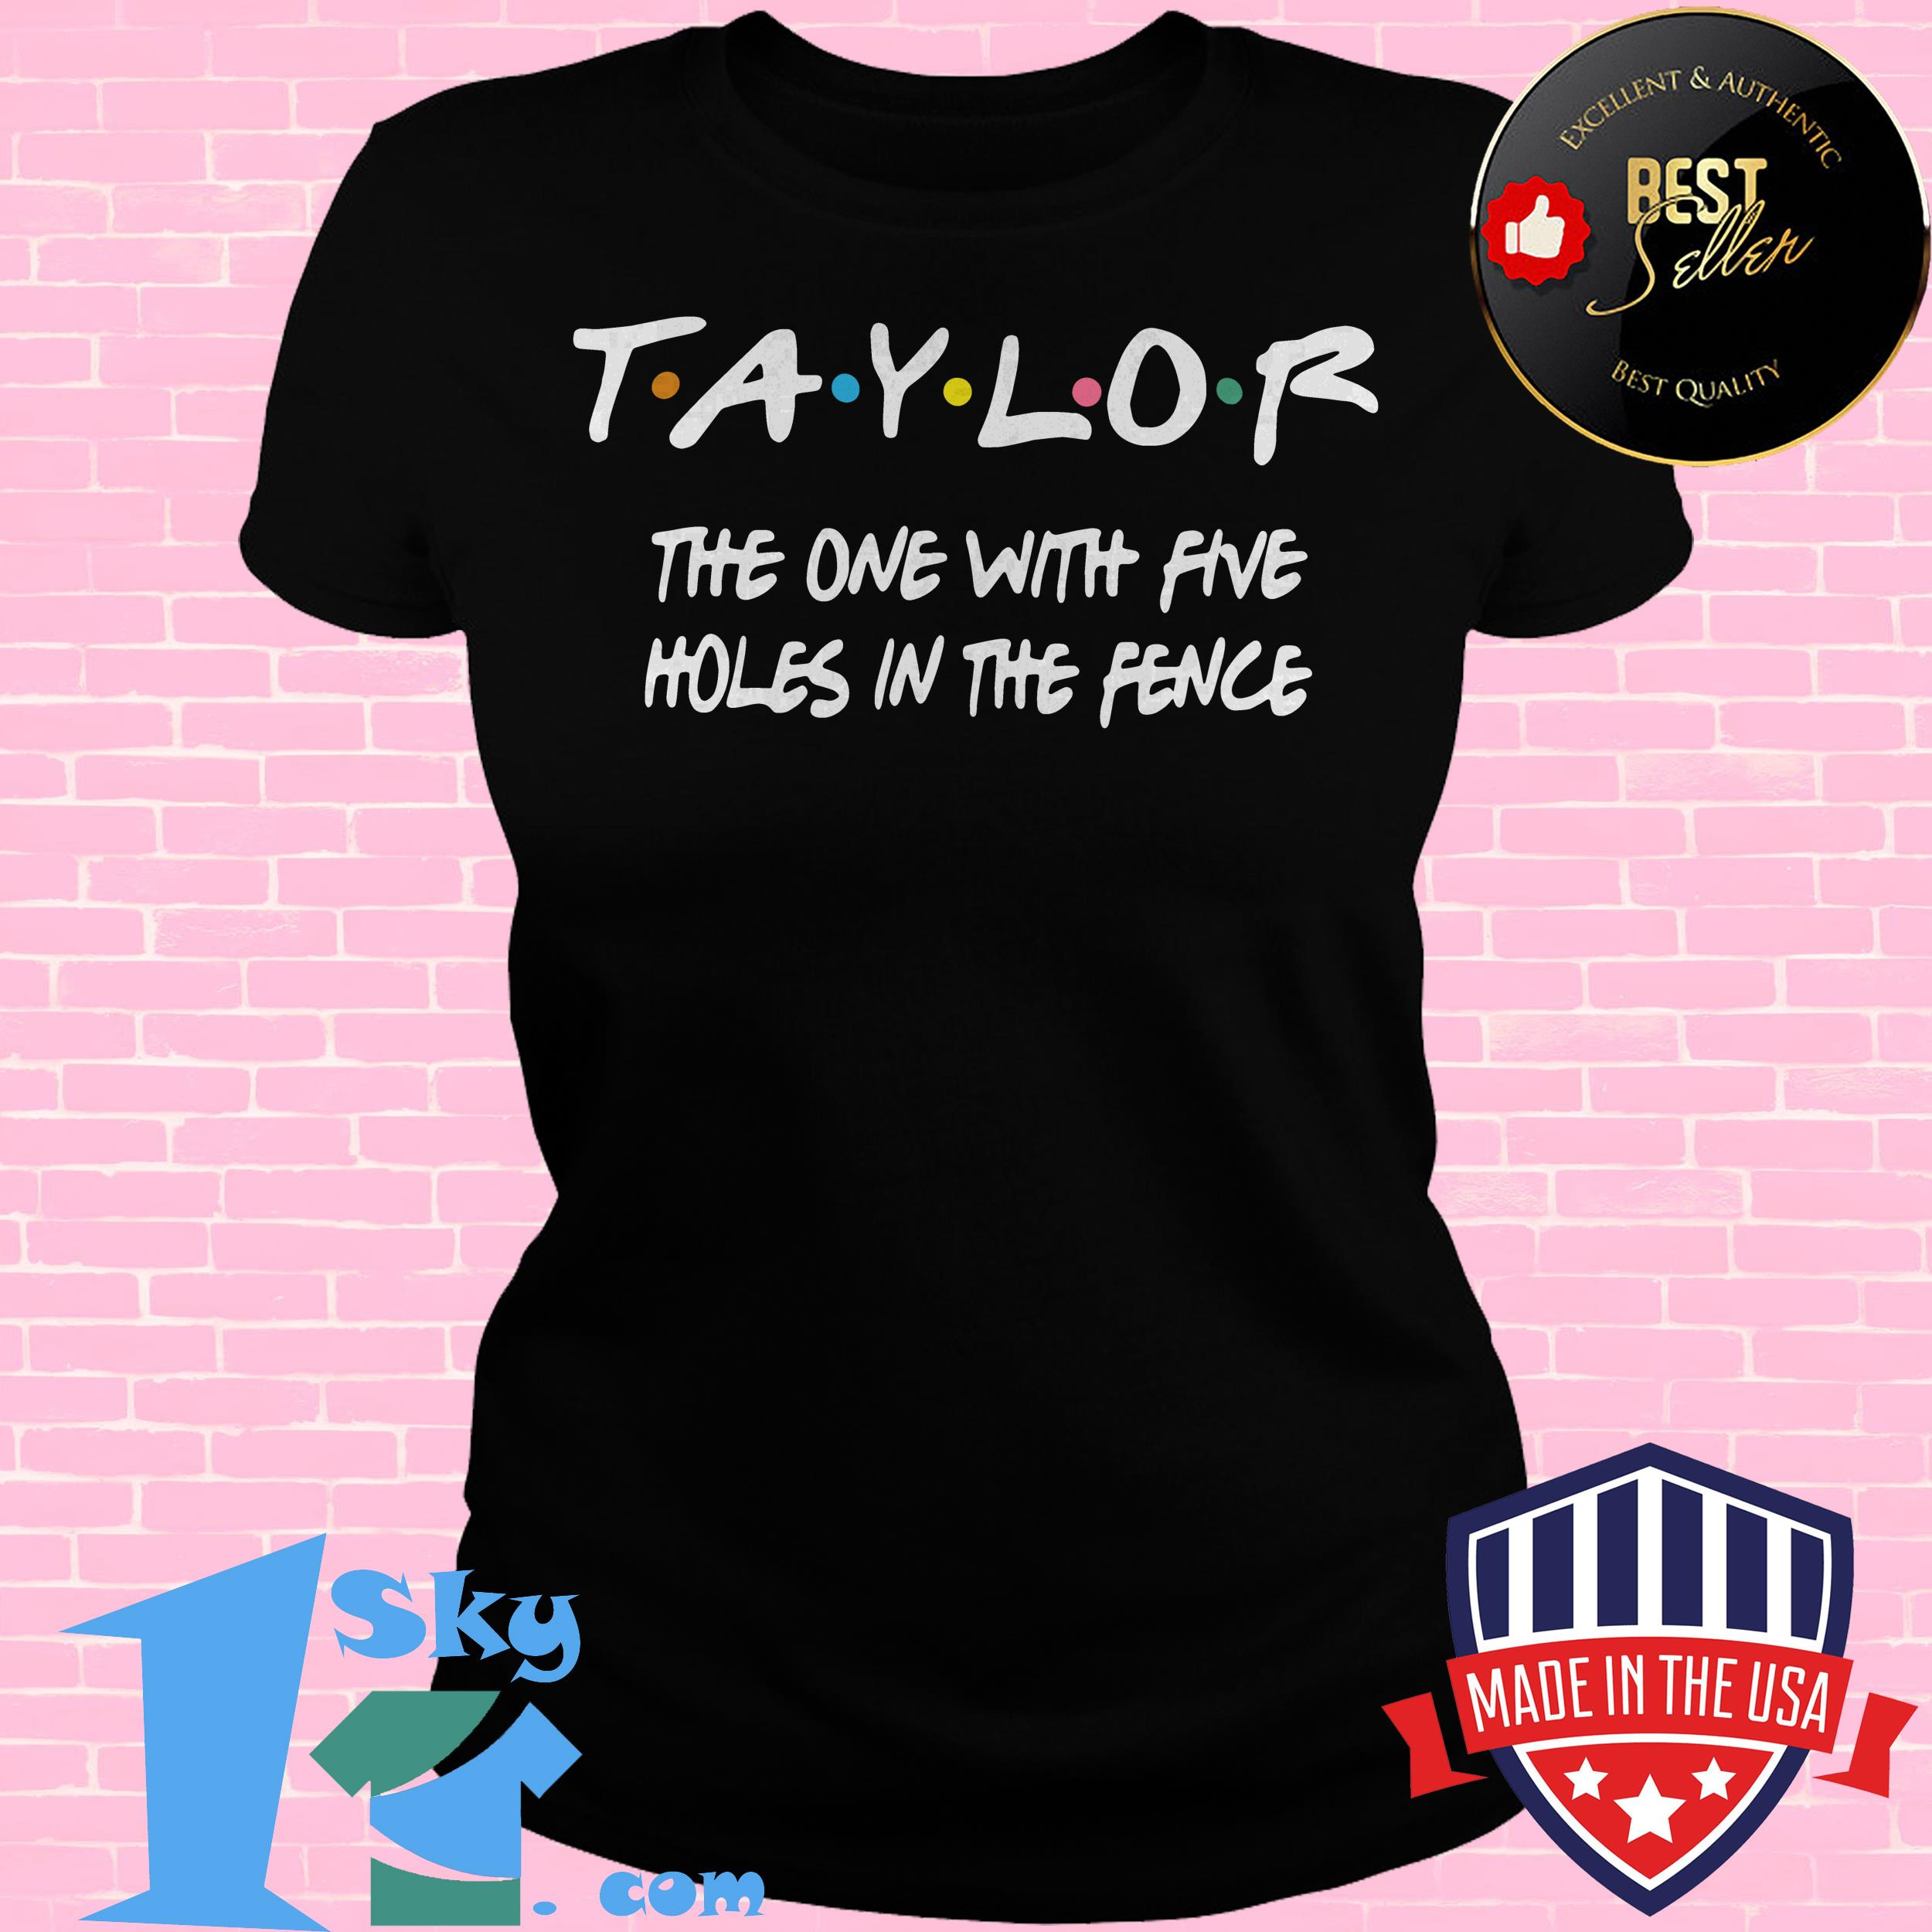 taylor swift the one with five holes in the fence ladies tee - Taylor Swift The One With Five Holes In The Fence shirt